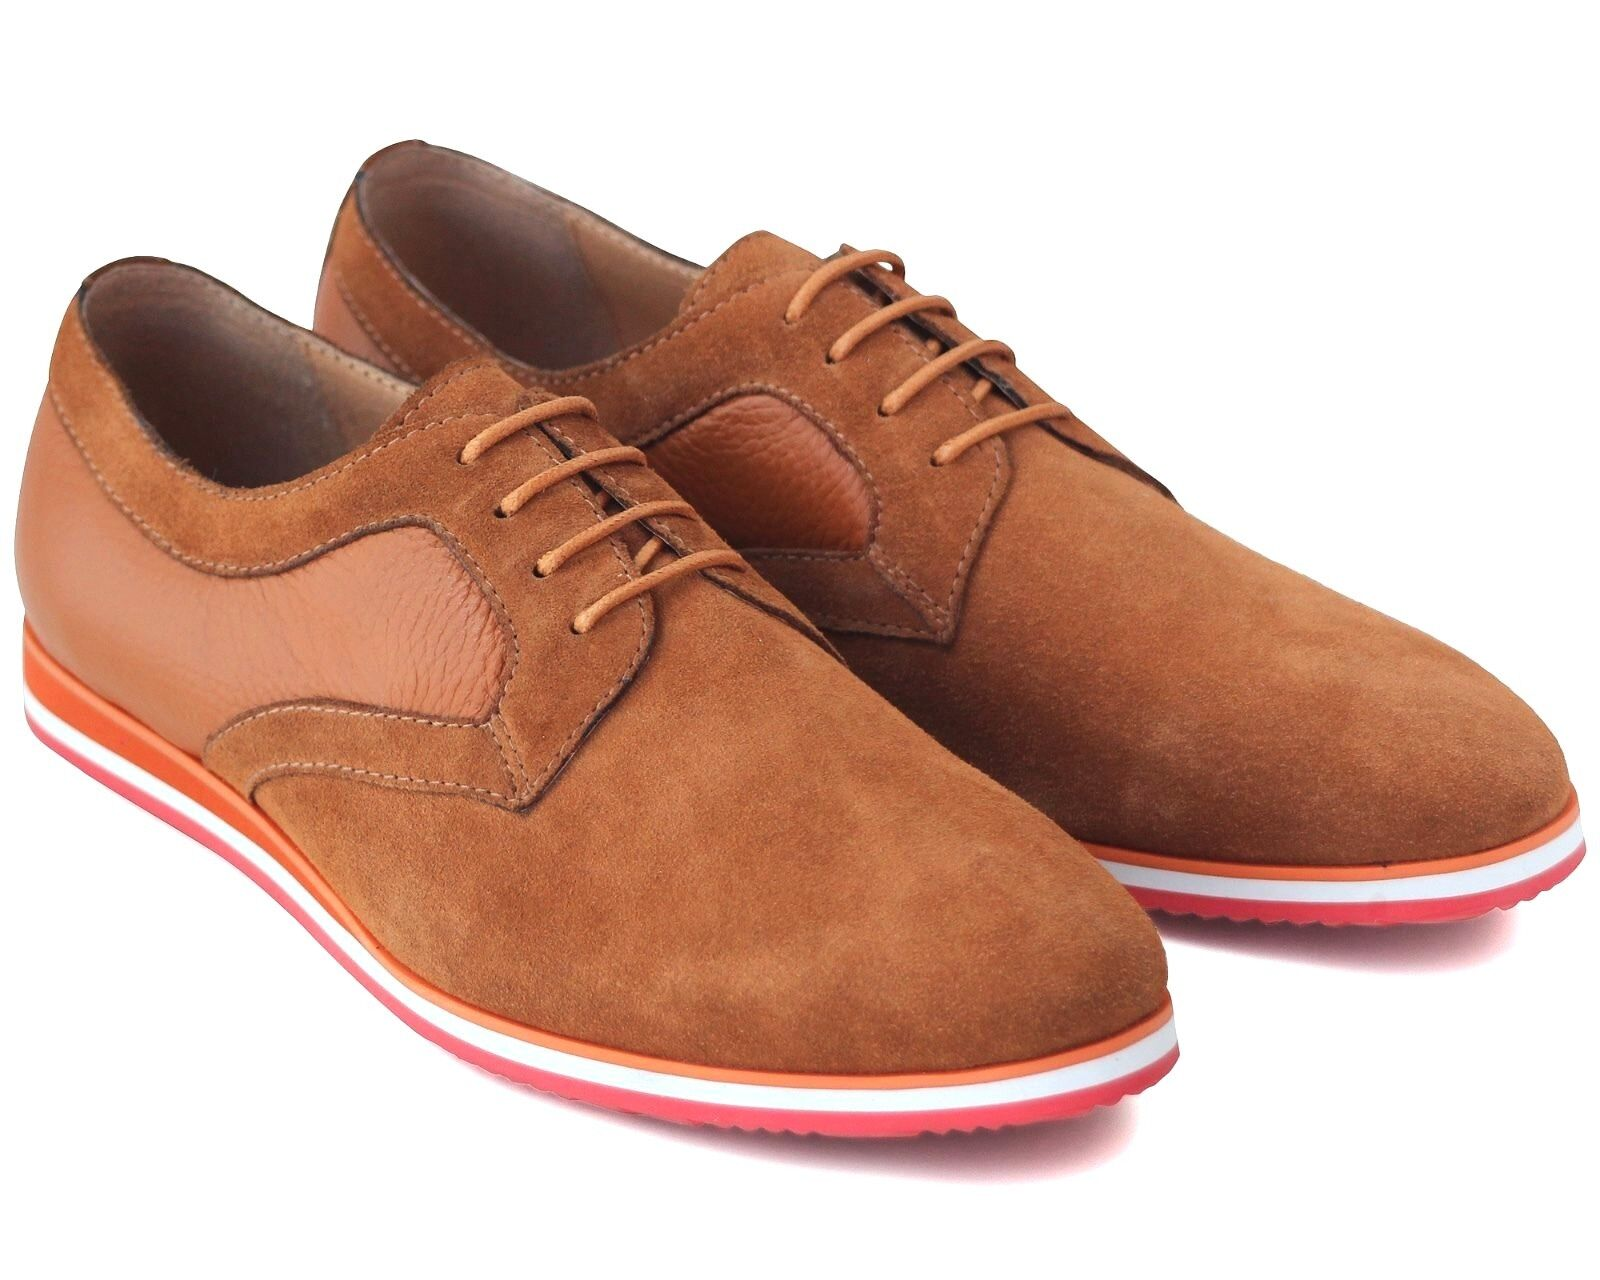 590 NEW MENS TAN BROWN SUEDE CASUAL SHOES LACE UP WEEKEND WORK COMFY